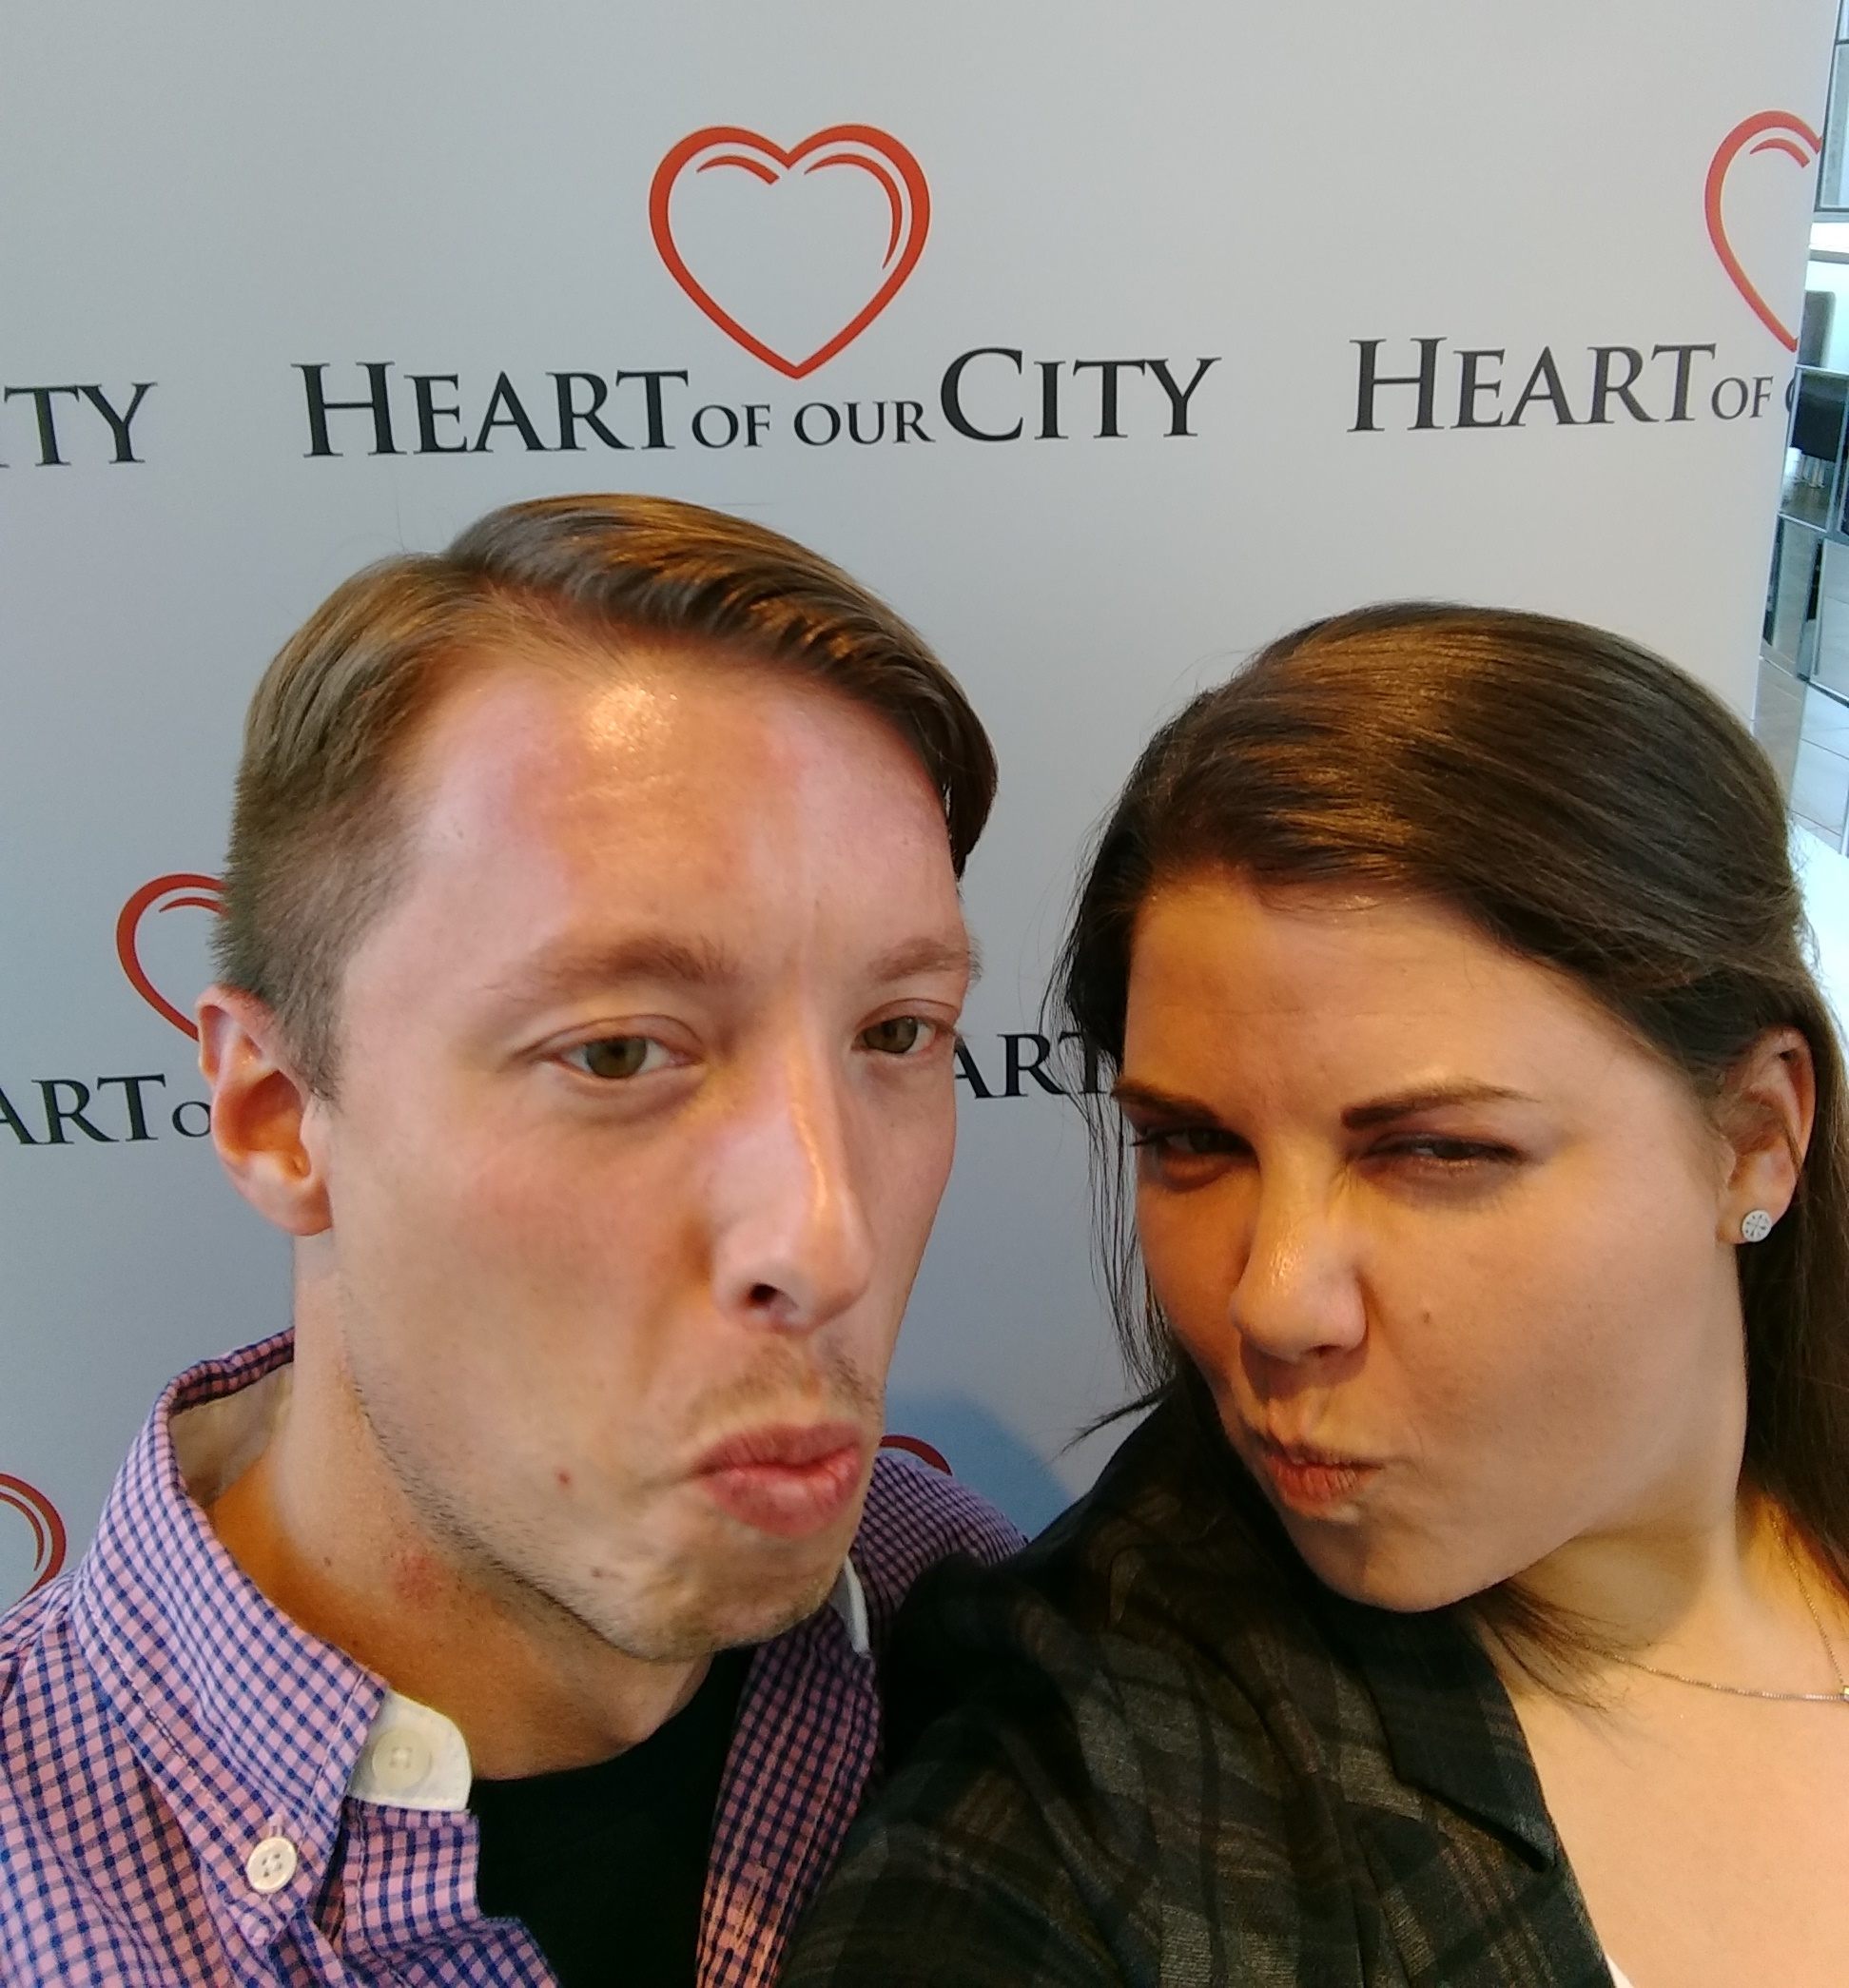 Tim & Andrea @ The Heart of the City awards presented by the Downtown BRZ.